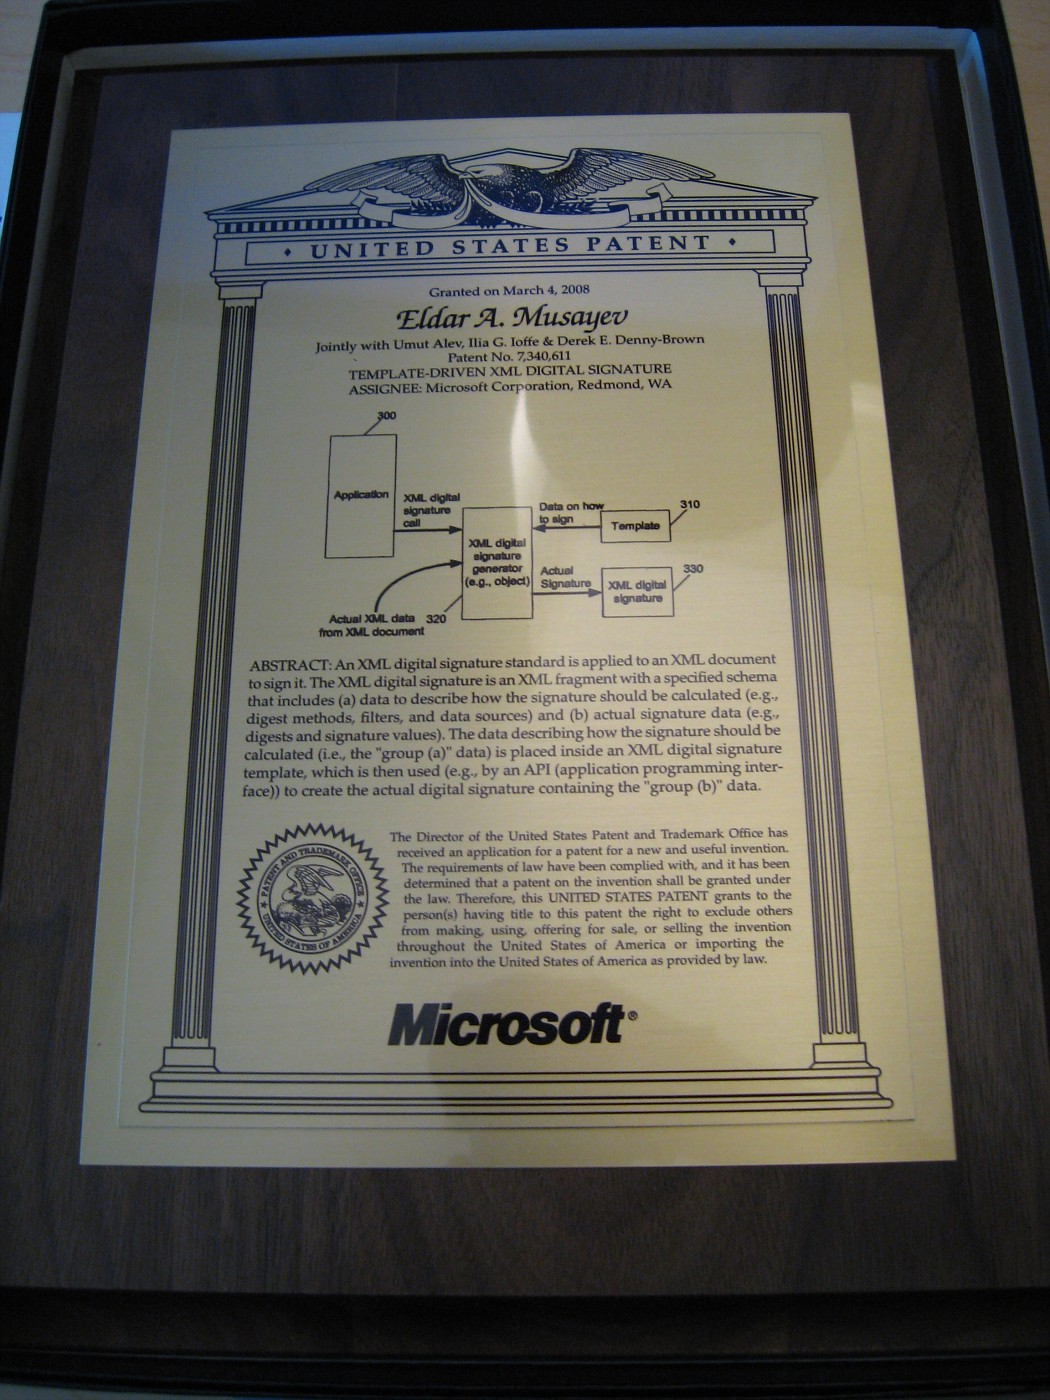 Template-driven XML signatures plaque